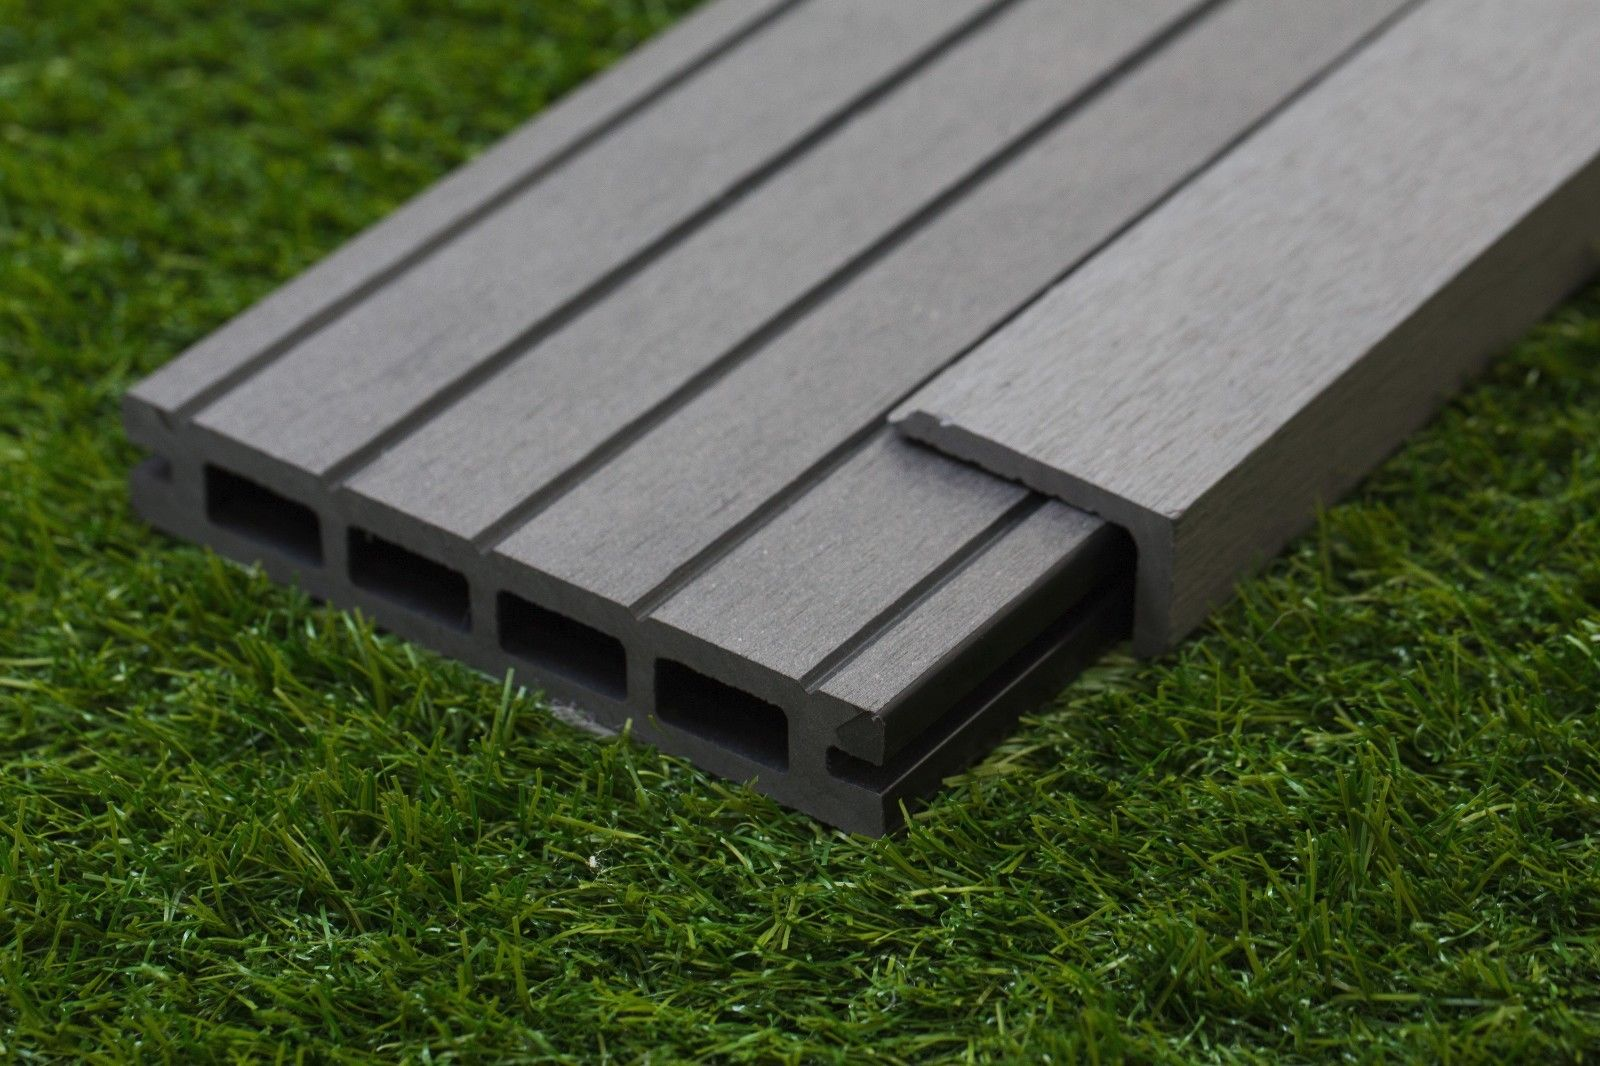 Any SQM of Wooden Fake Plastic Composite Decking Inc Boards Edging Repairing Packs